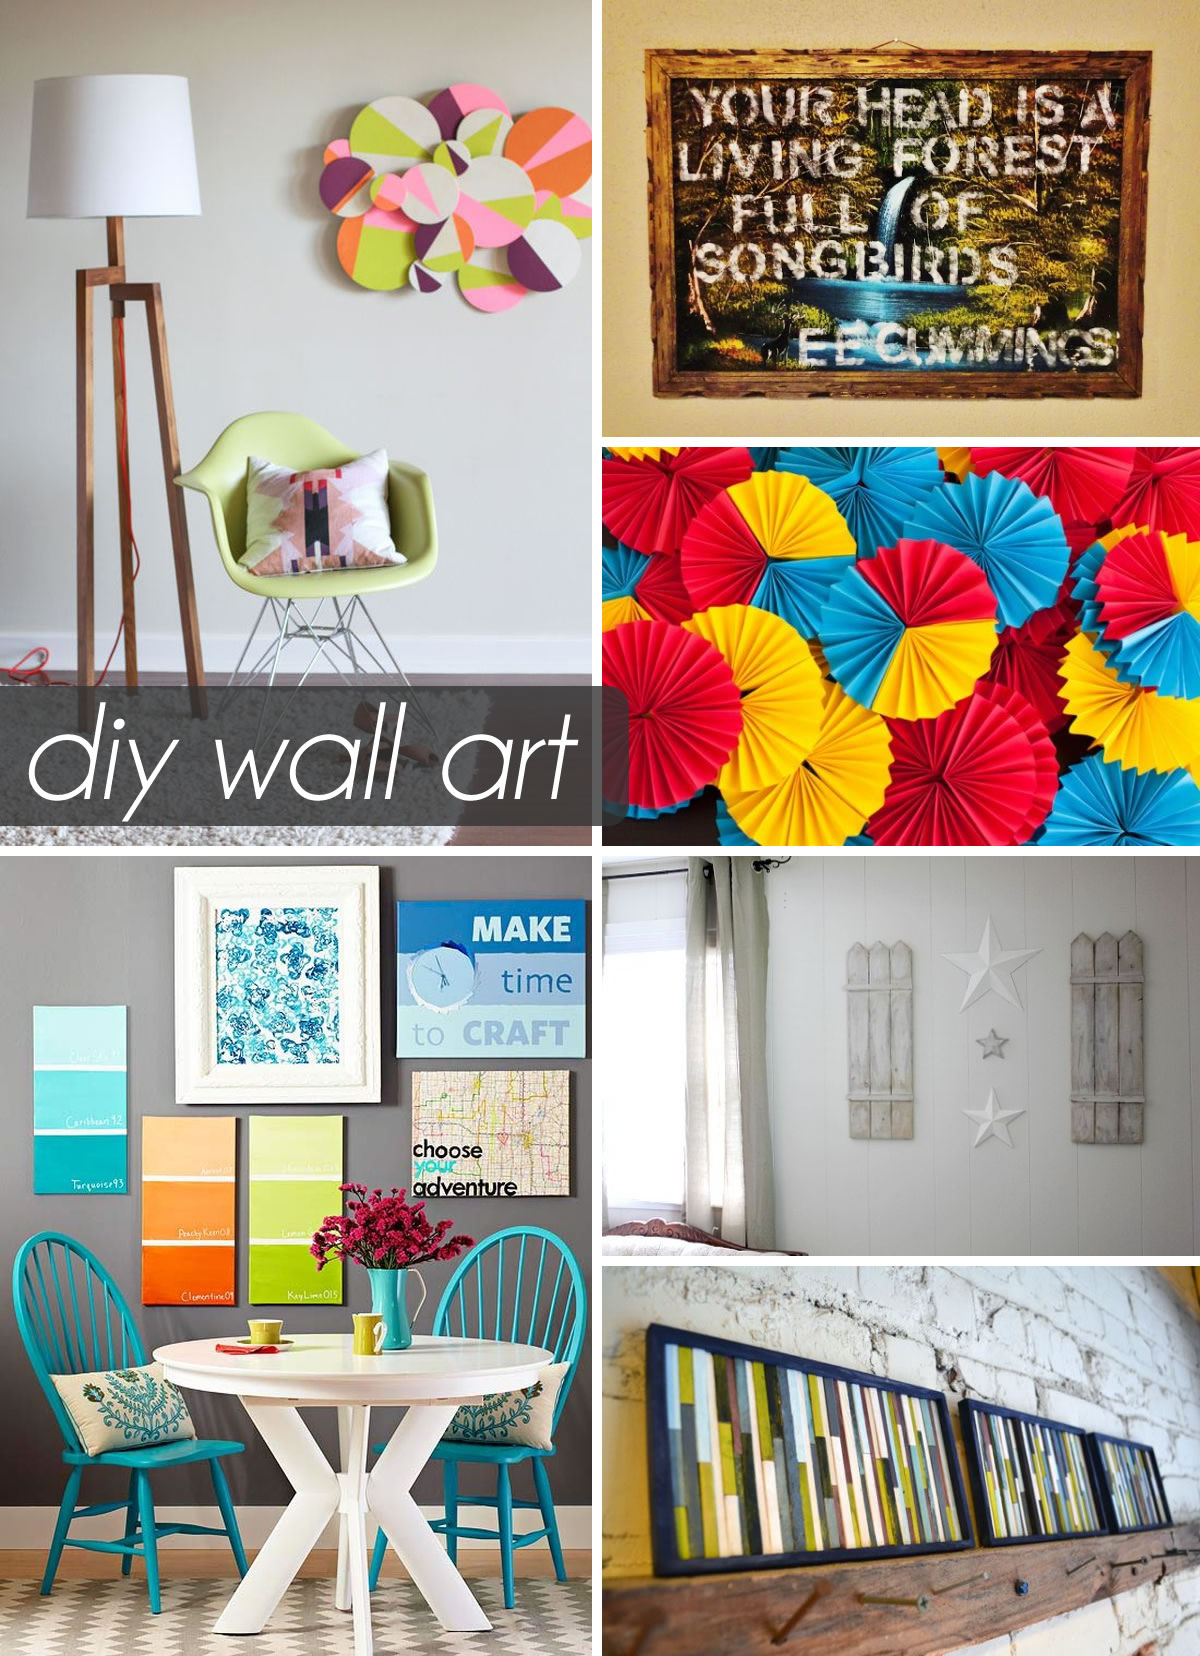 Bedroom wall decoration diy - Bedroom Wall Decoration Diy 2